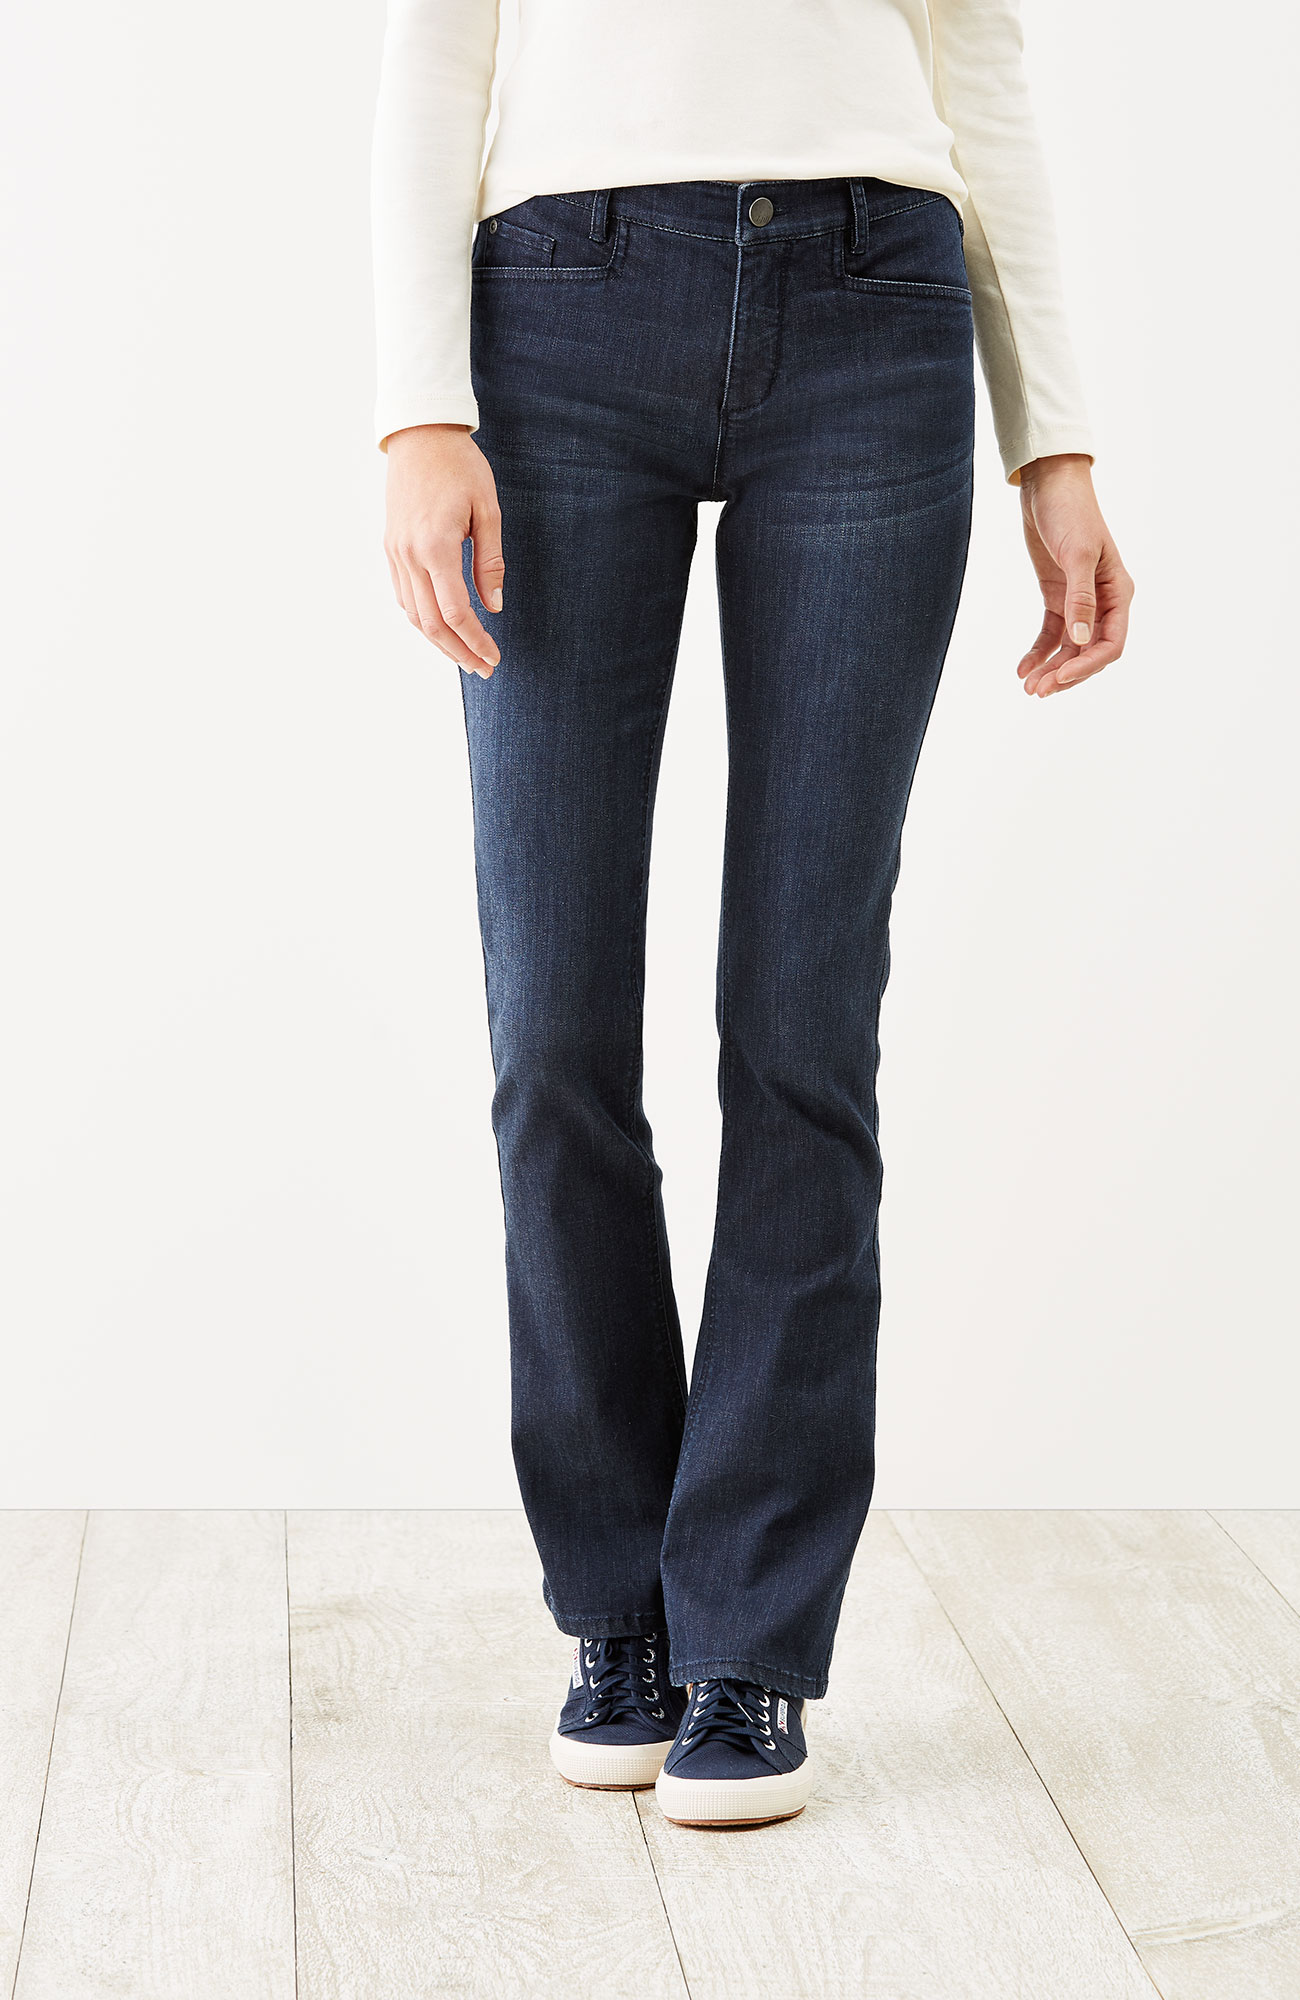 Smooth-Fit barely boot-cut jeans